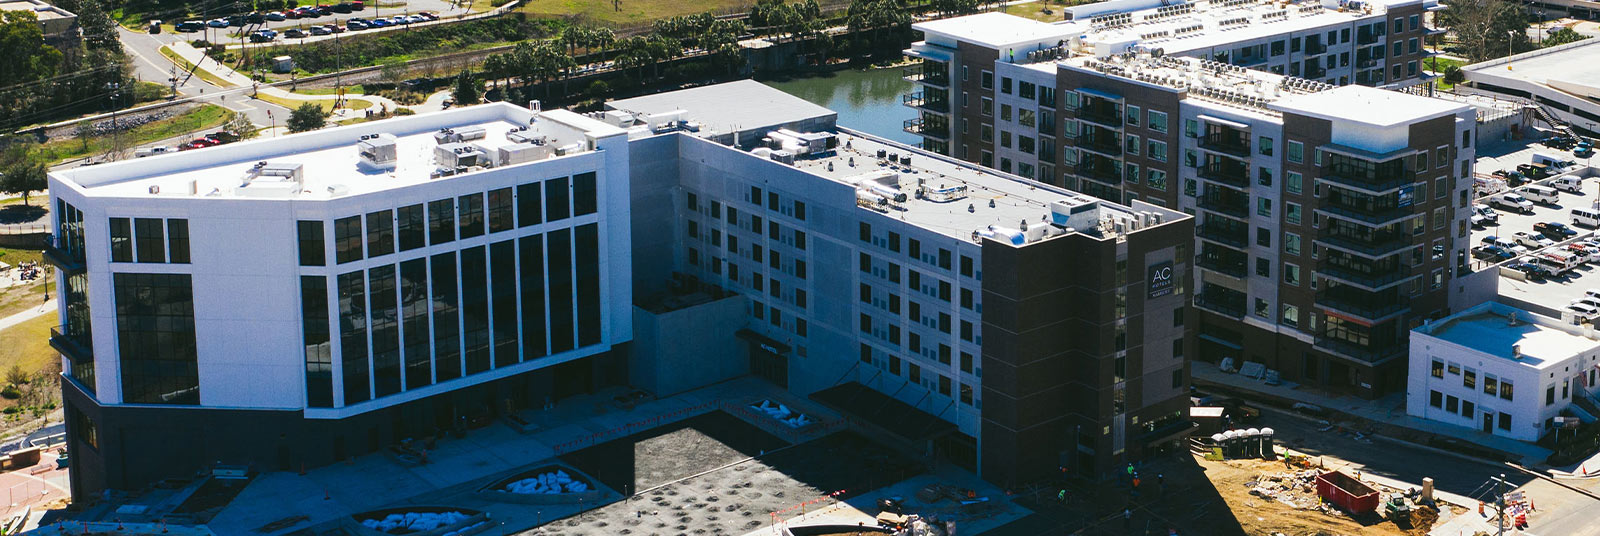 Aerial view of the AC Tallahassee in Florida.